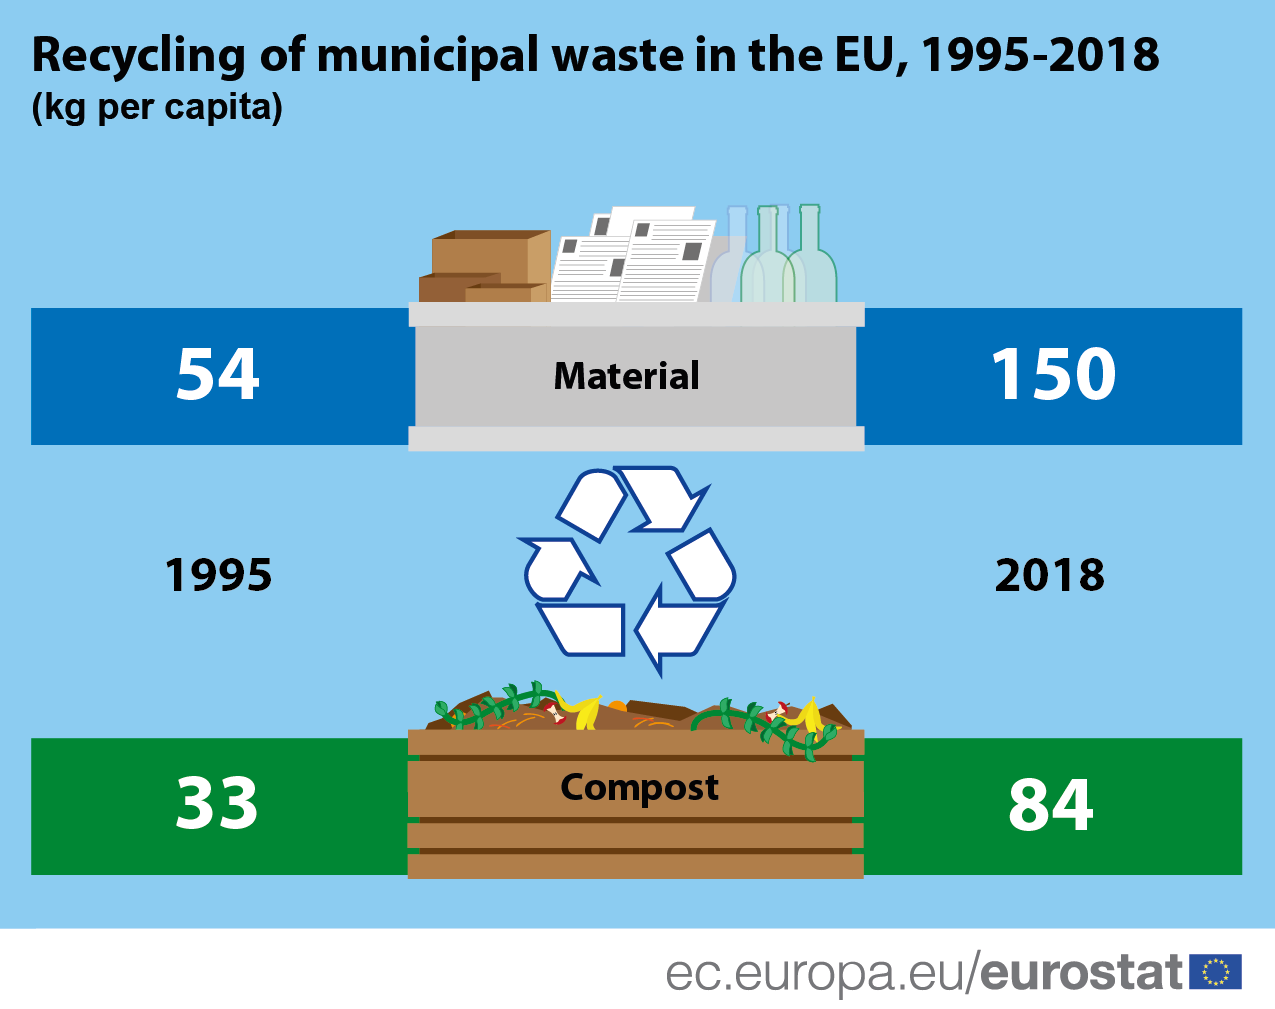 Infographic: Recycling of municipal waste, material recycling and composting, 1995 and 2018